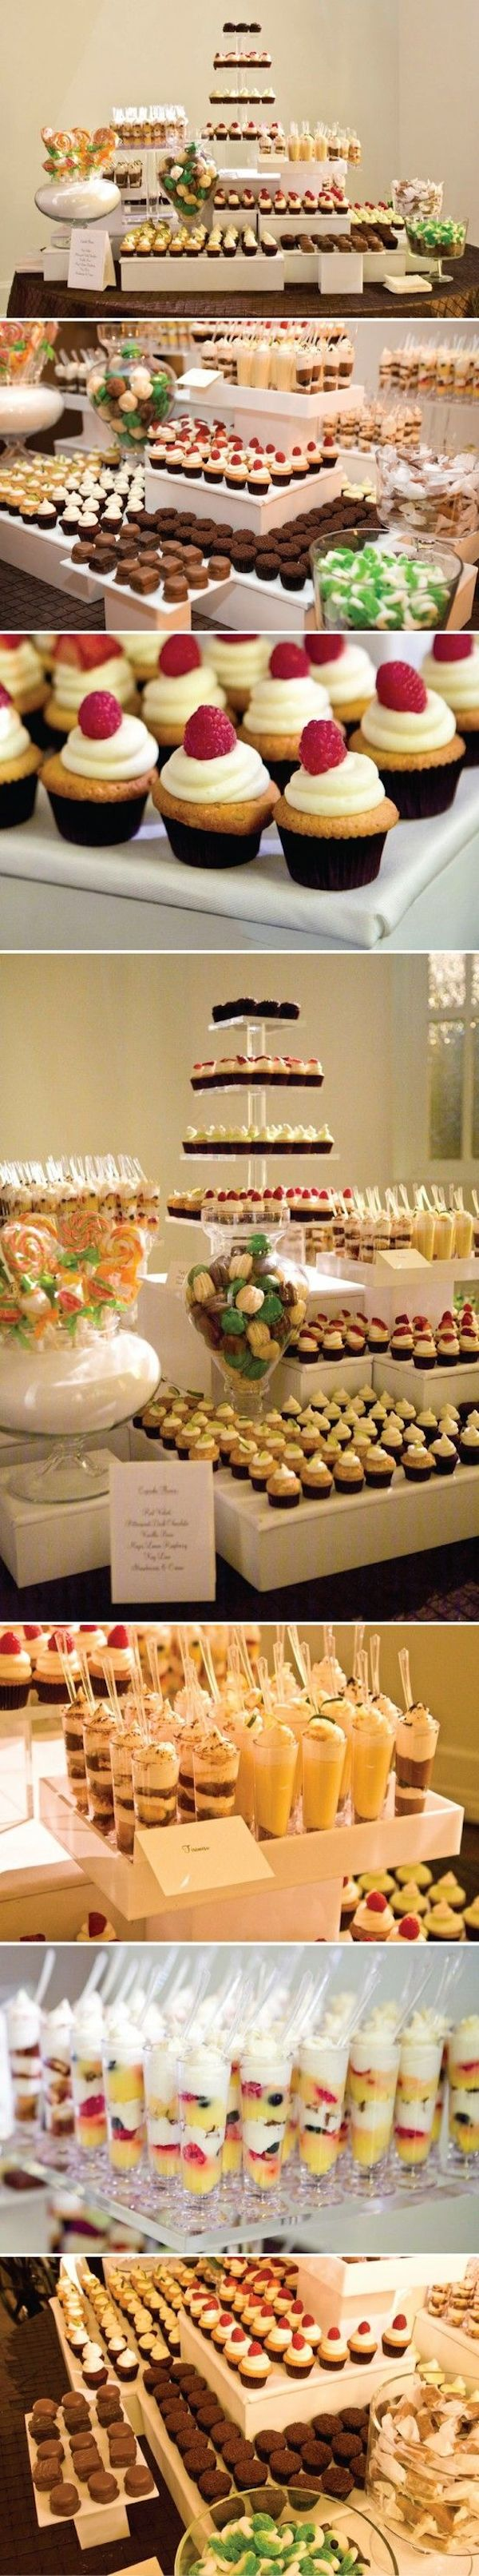 wedding-cake-alternatives-mini-desert-bar-vintage-inspired-wedding-deserts-5